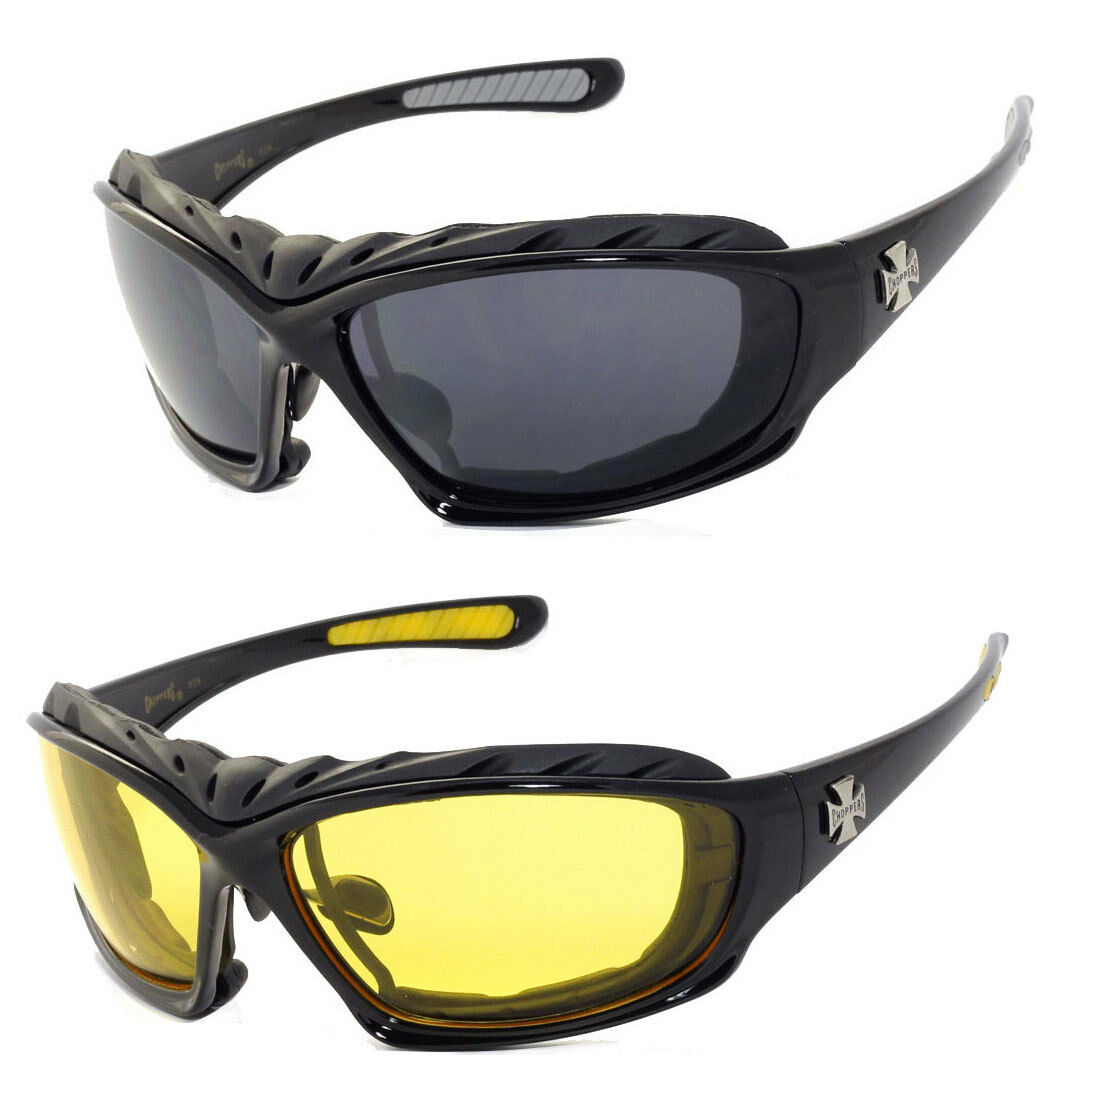 071d8fc5c8 Details about 2 PAIRS COMBO Chopper Padded Wind Resistant Sunglasses  Motorcycle Riding Glasses